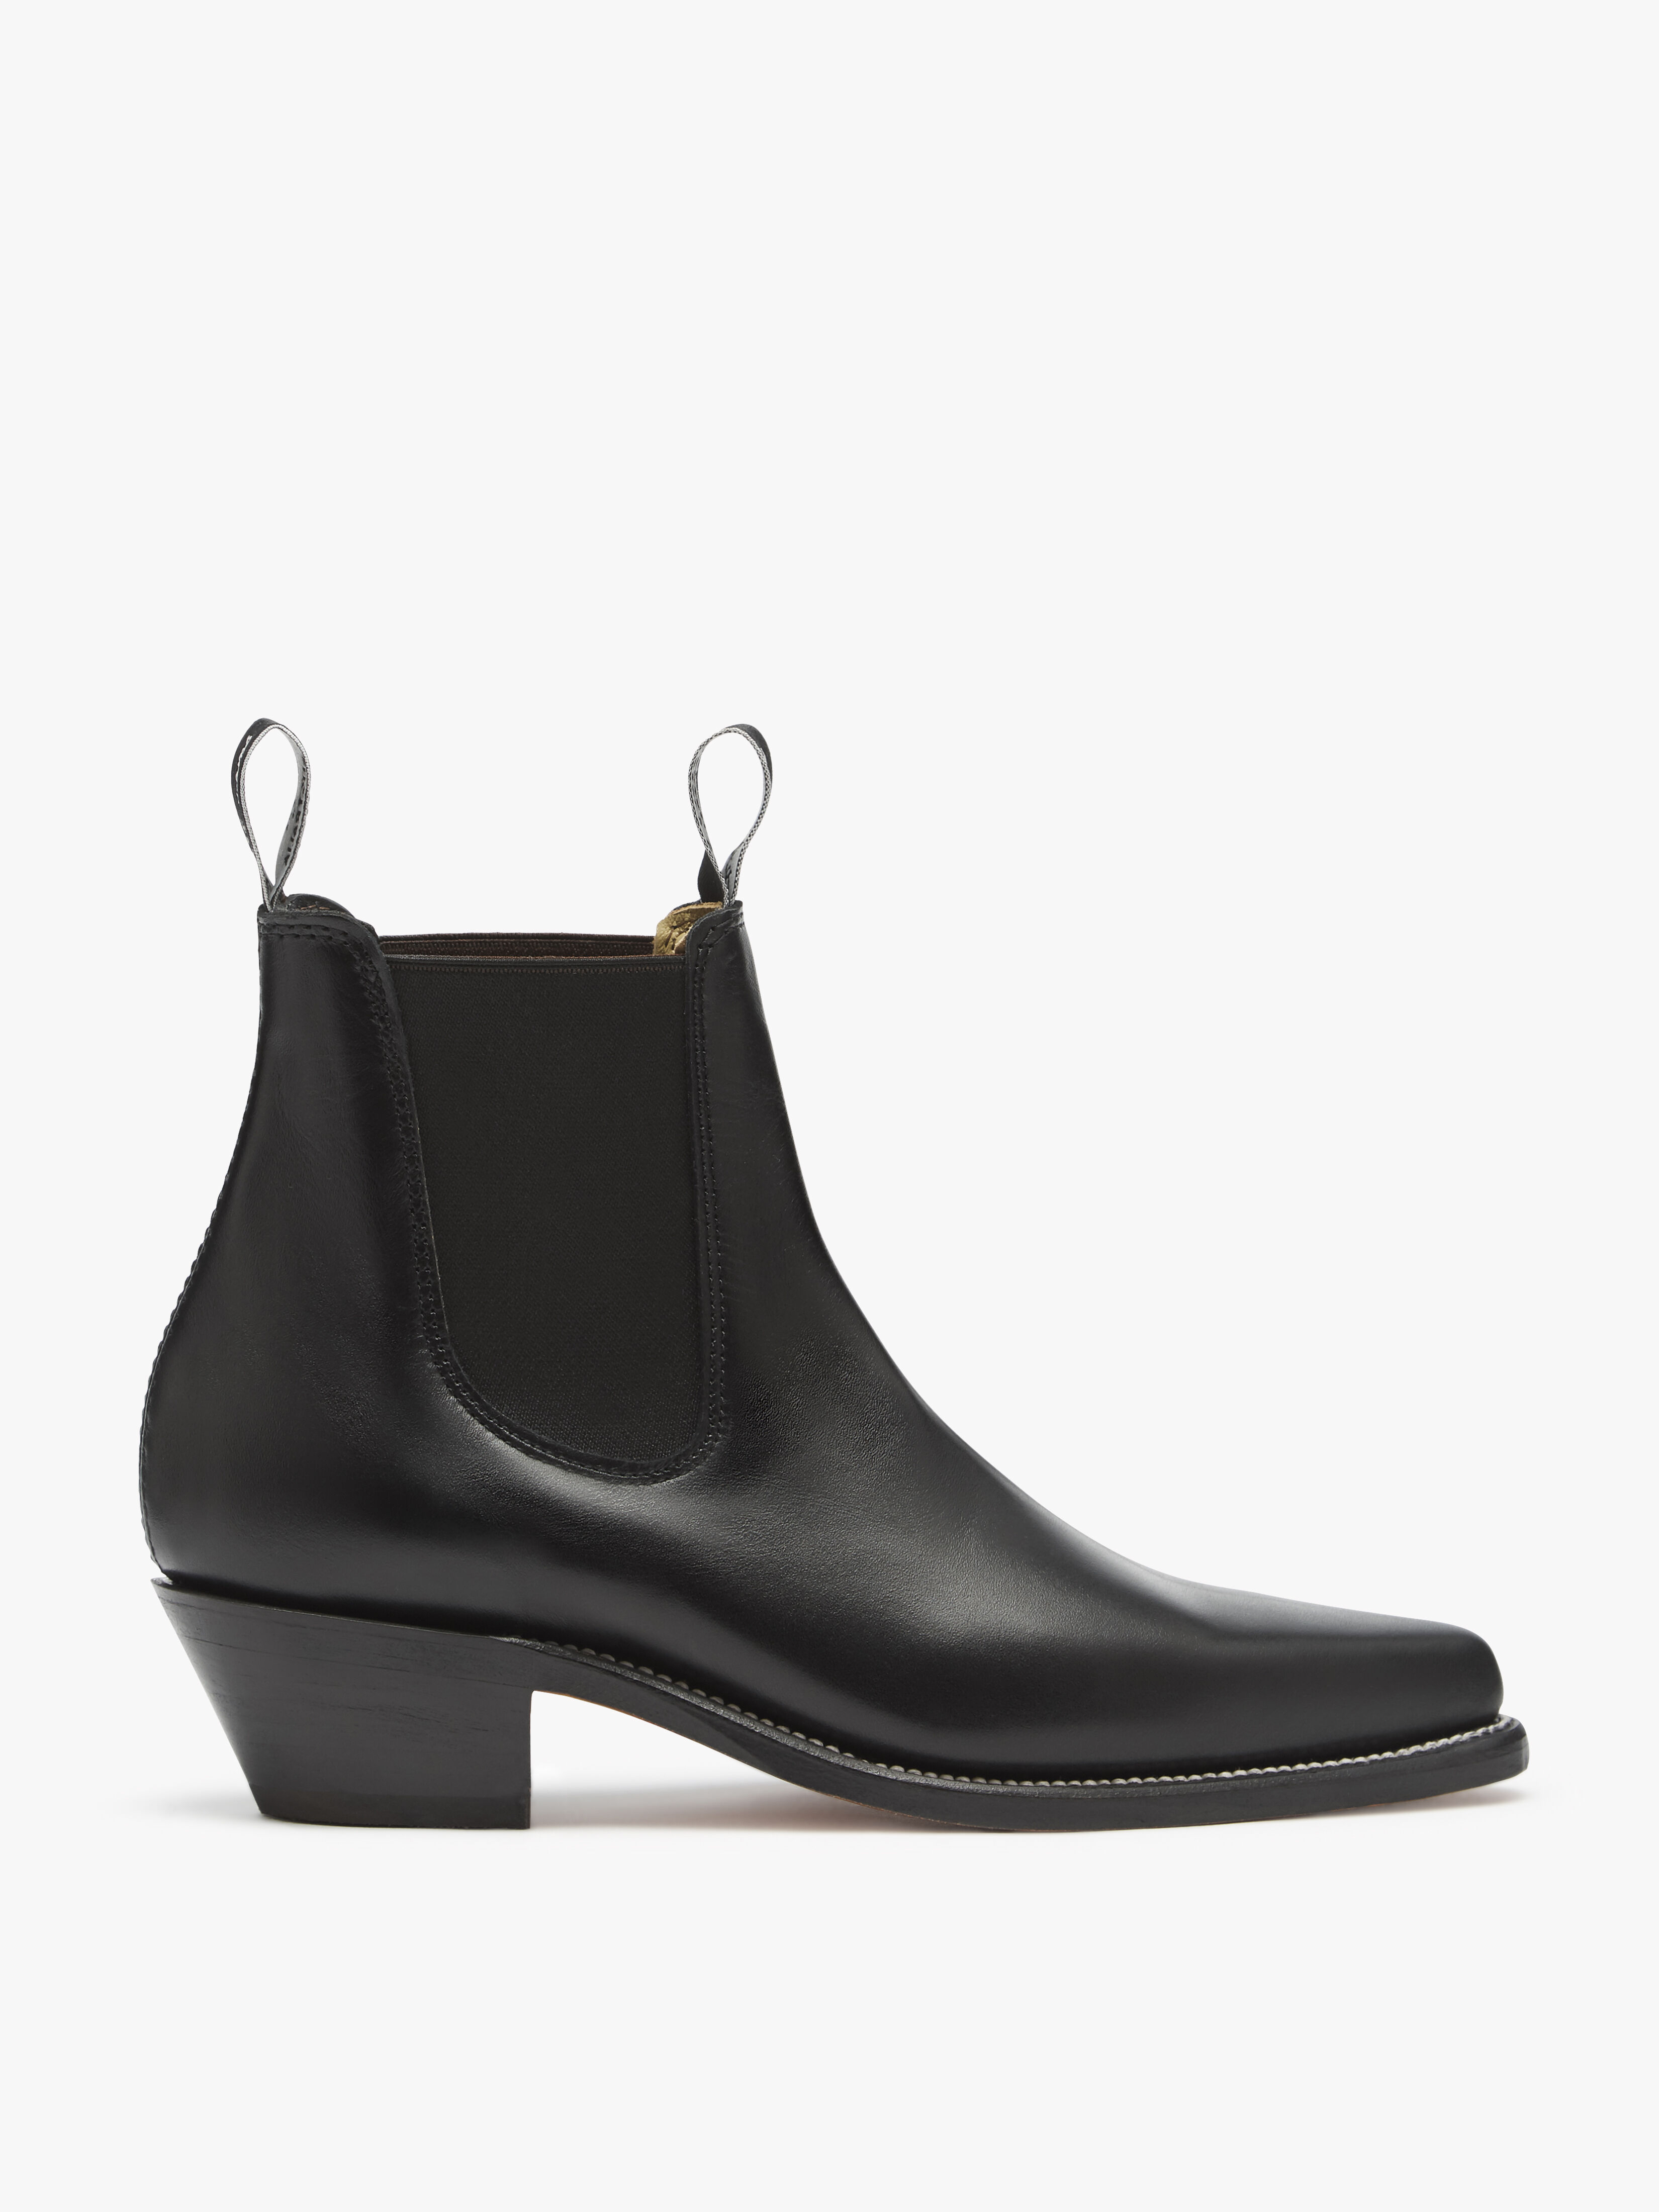 Millicent Boot - Women's Boots at R.M